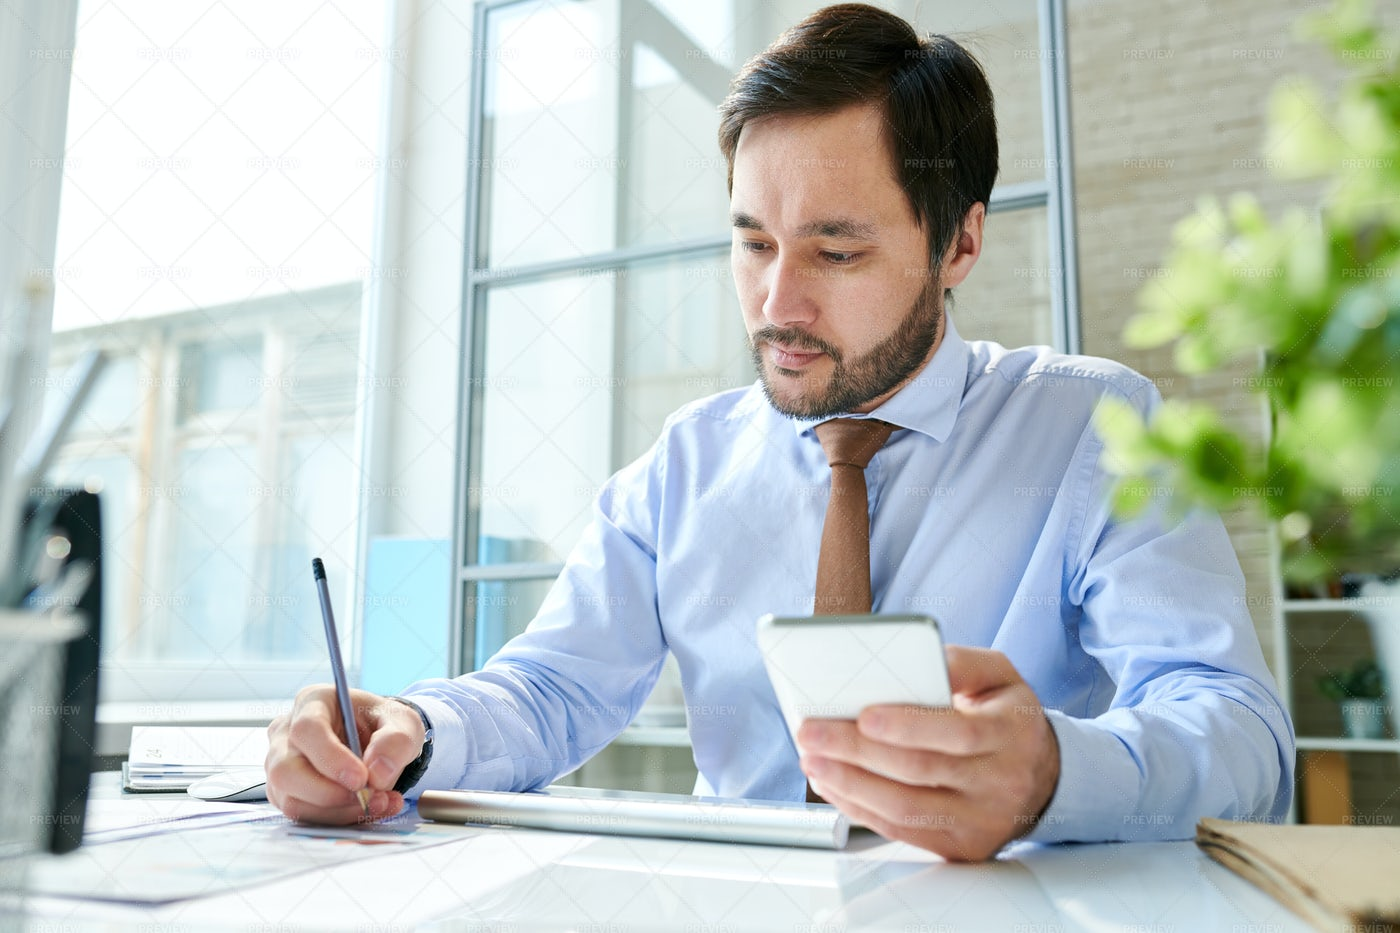 Employee Working With Smartphone In...: Stock Photos